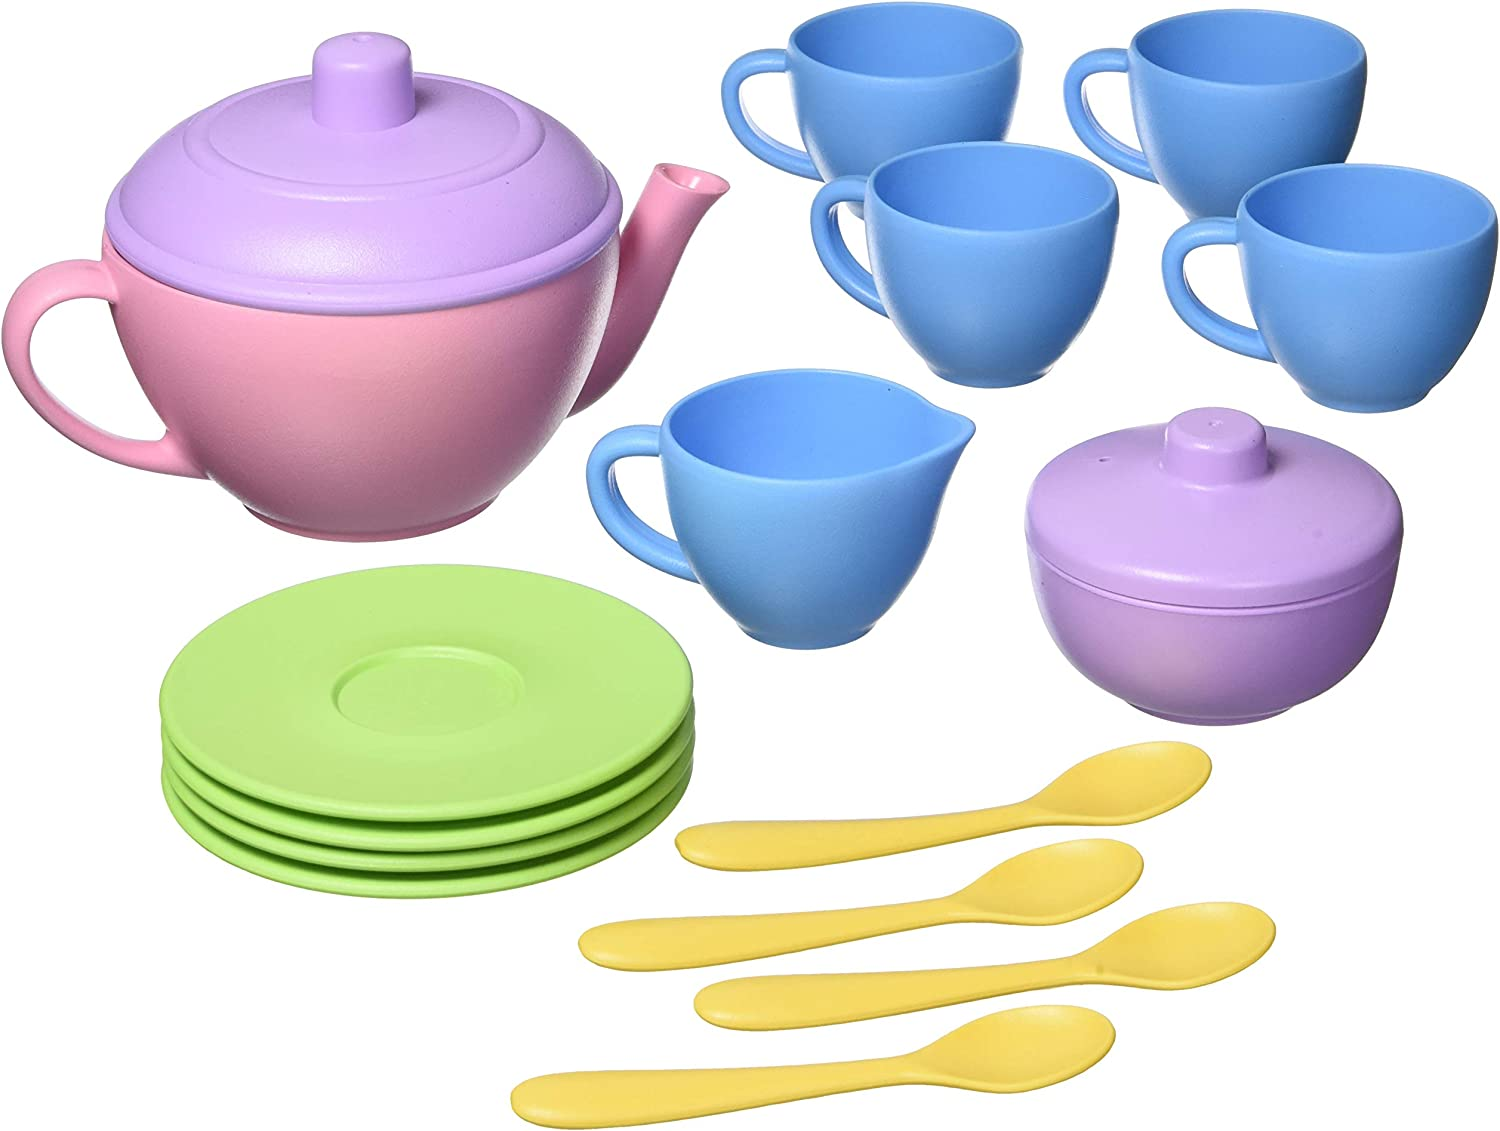 Green Toys Tea Set, Pink 4C - 17 Piece Pretend Play, Motor Skills, Language & Communication Kids Role Play Toy. No BPA, phthalates, PVC. Dishwasher Safe, Recycled Plastic, Made in USA.